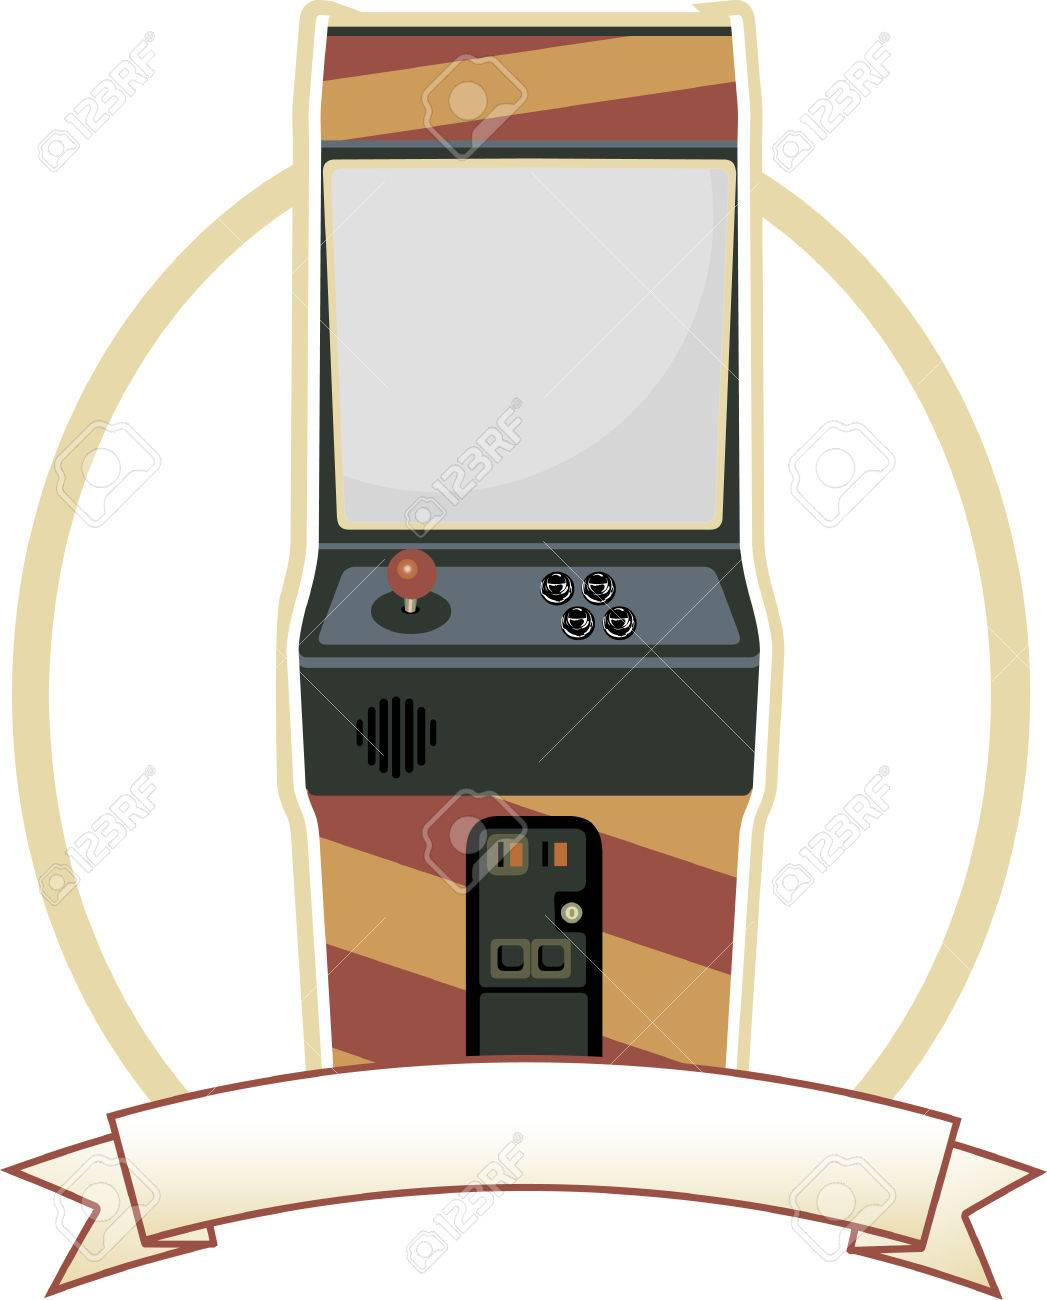 Video Arcade Cabinet Oval Badge Stock Vector - 6689481